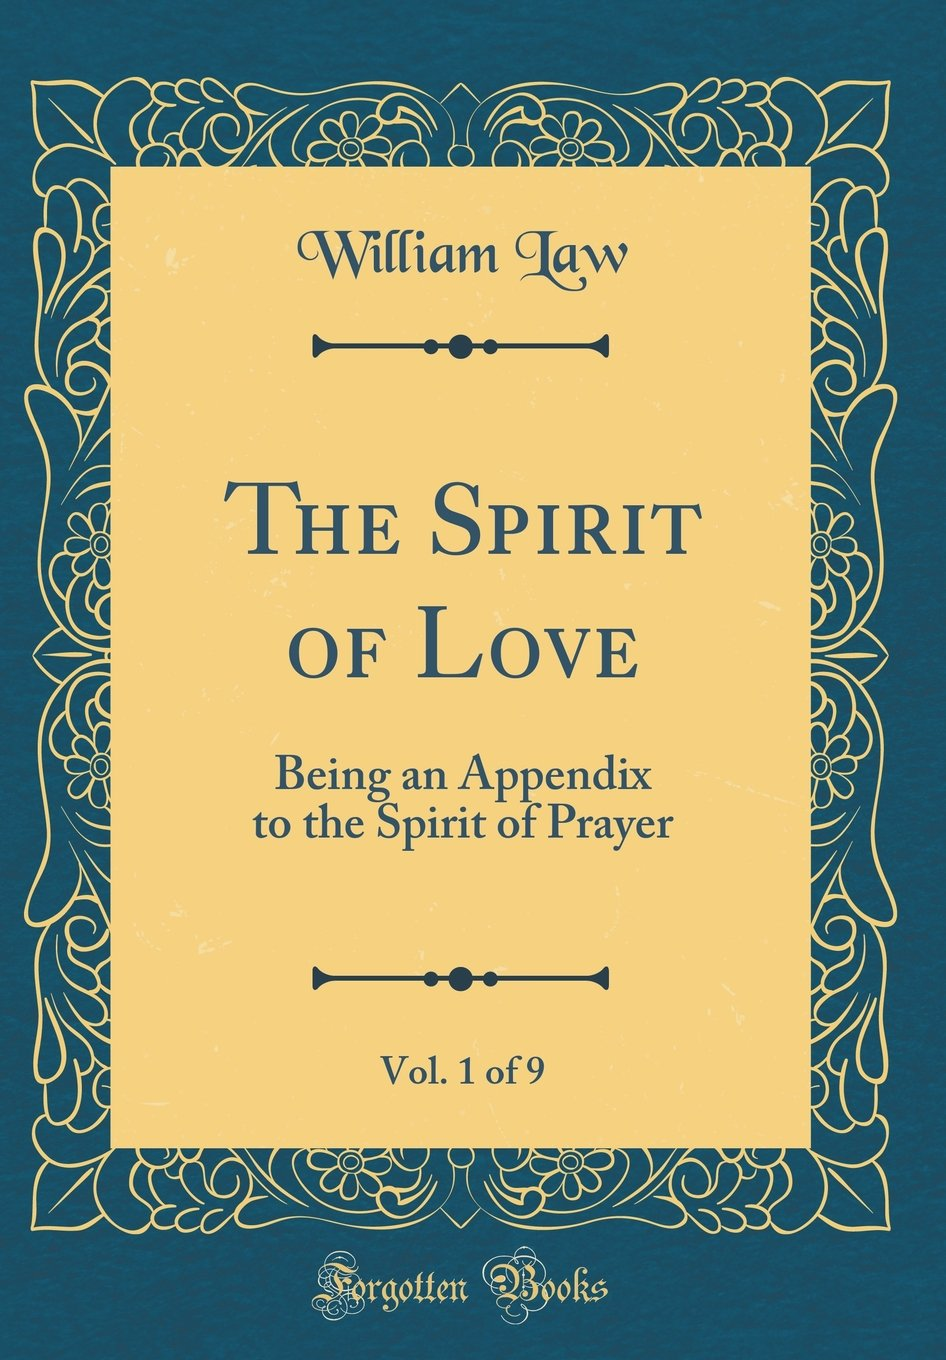 The Spirit of Love, Vol. 1 of 9: Being an Appendix to the Spirit of Prayer (Classic Reprint) PDF